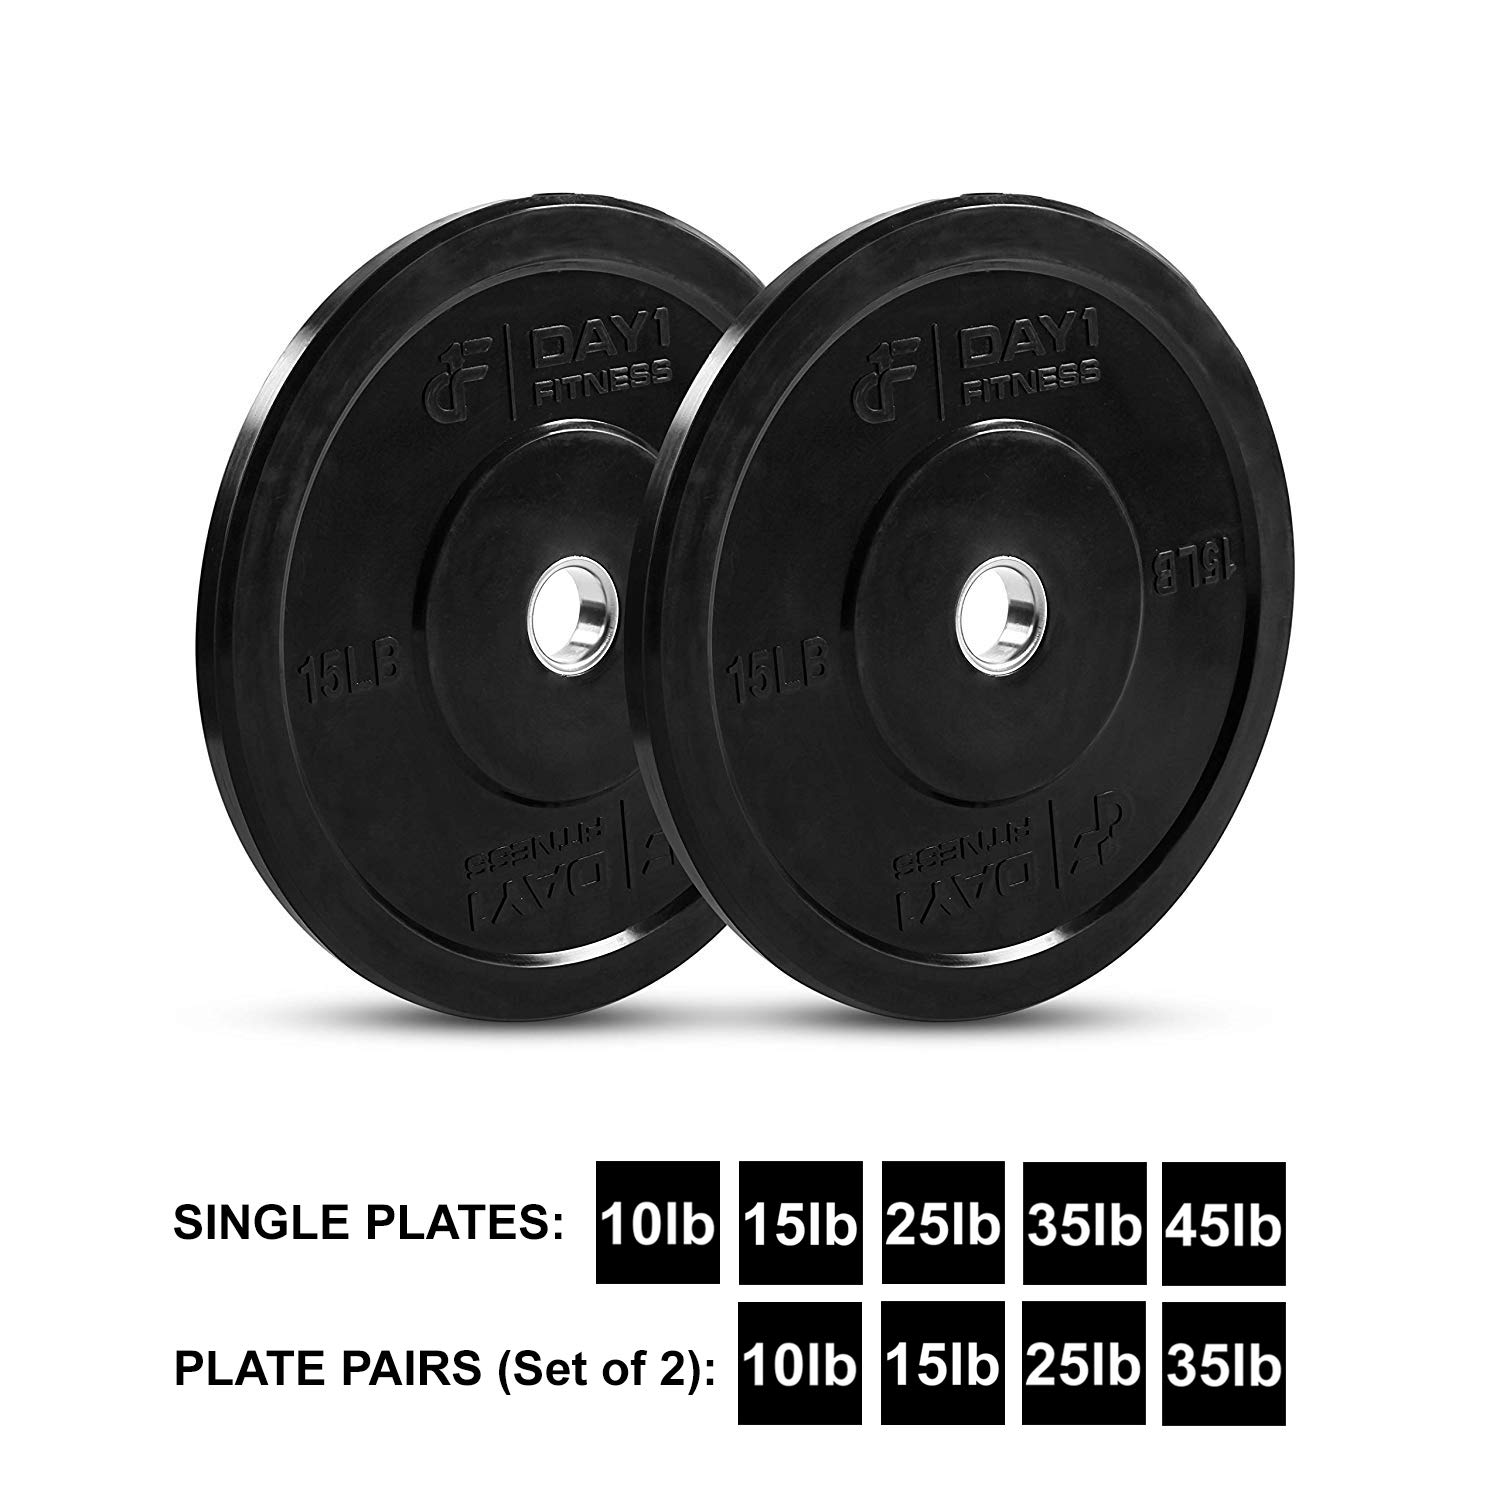 """Day 1 Fitness Olympic Bumper Weighted Plate 2"""" for Barbells, Bars – 15 lb Set of 2 Plates - Shock-Absorbing, Minimal Bounce Steel Weights with Bumpers for Lifting, Strength Training, and Working Out by Day 1 Fitness (Image #1)"""